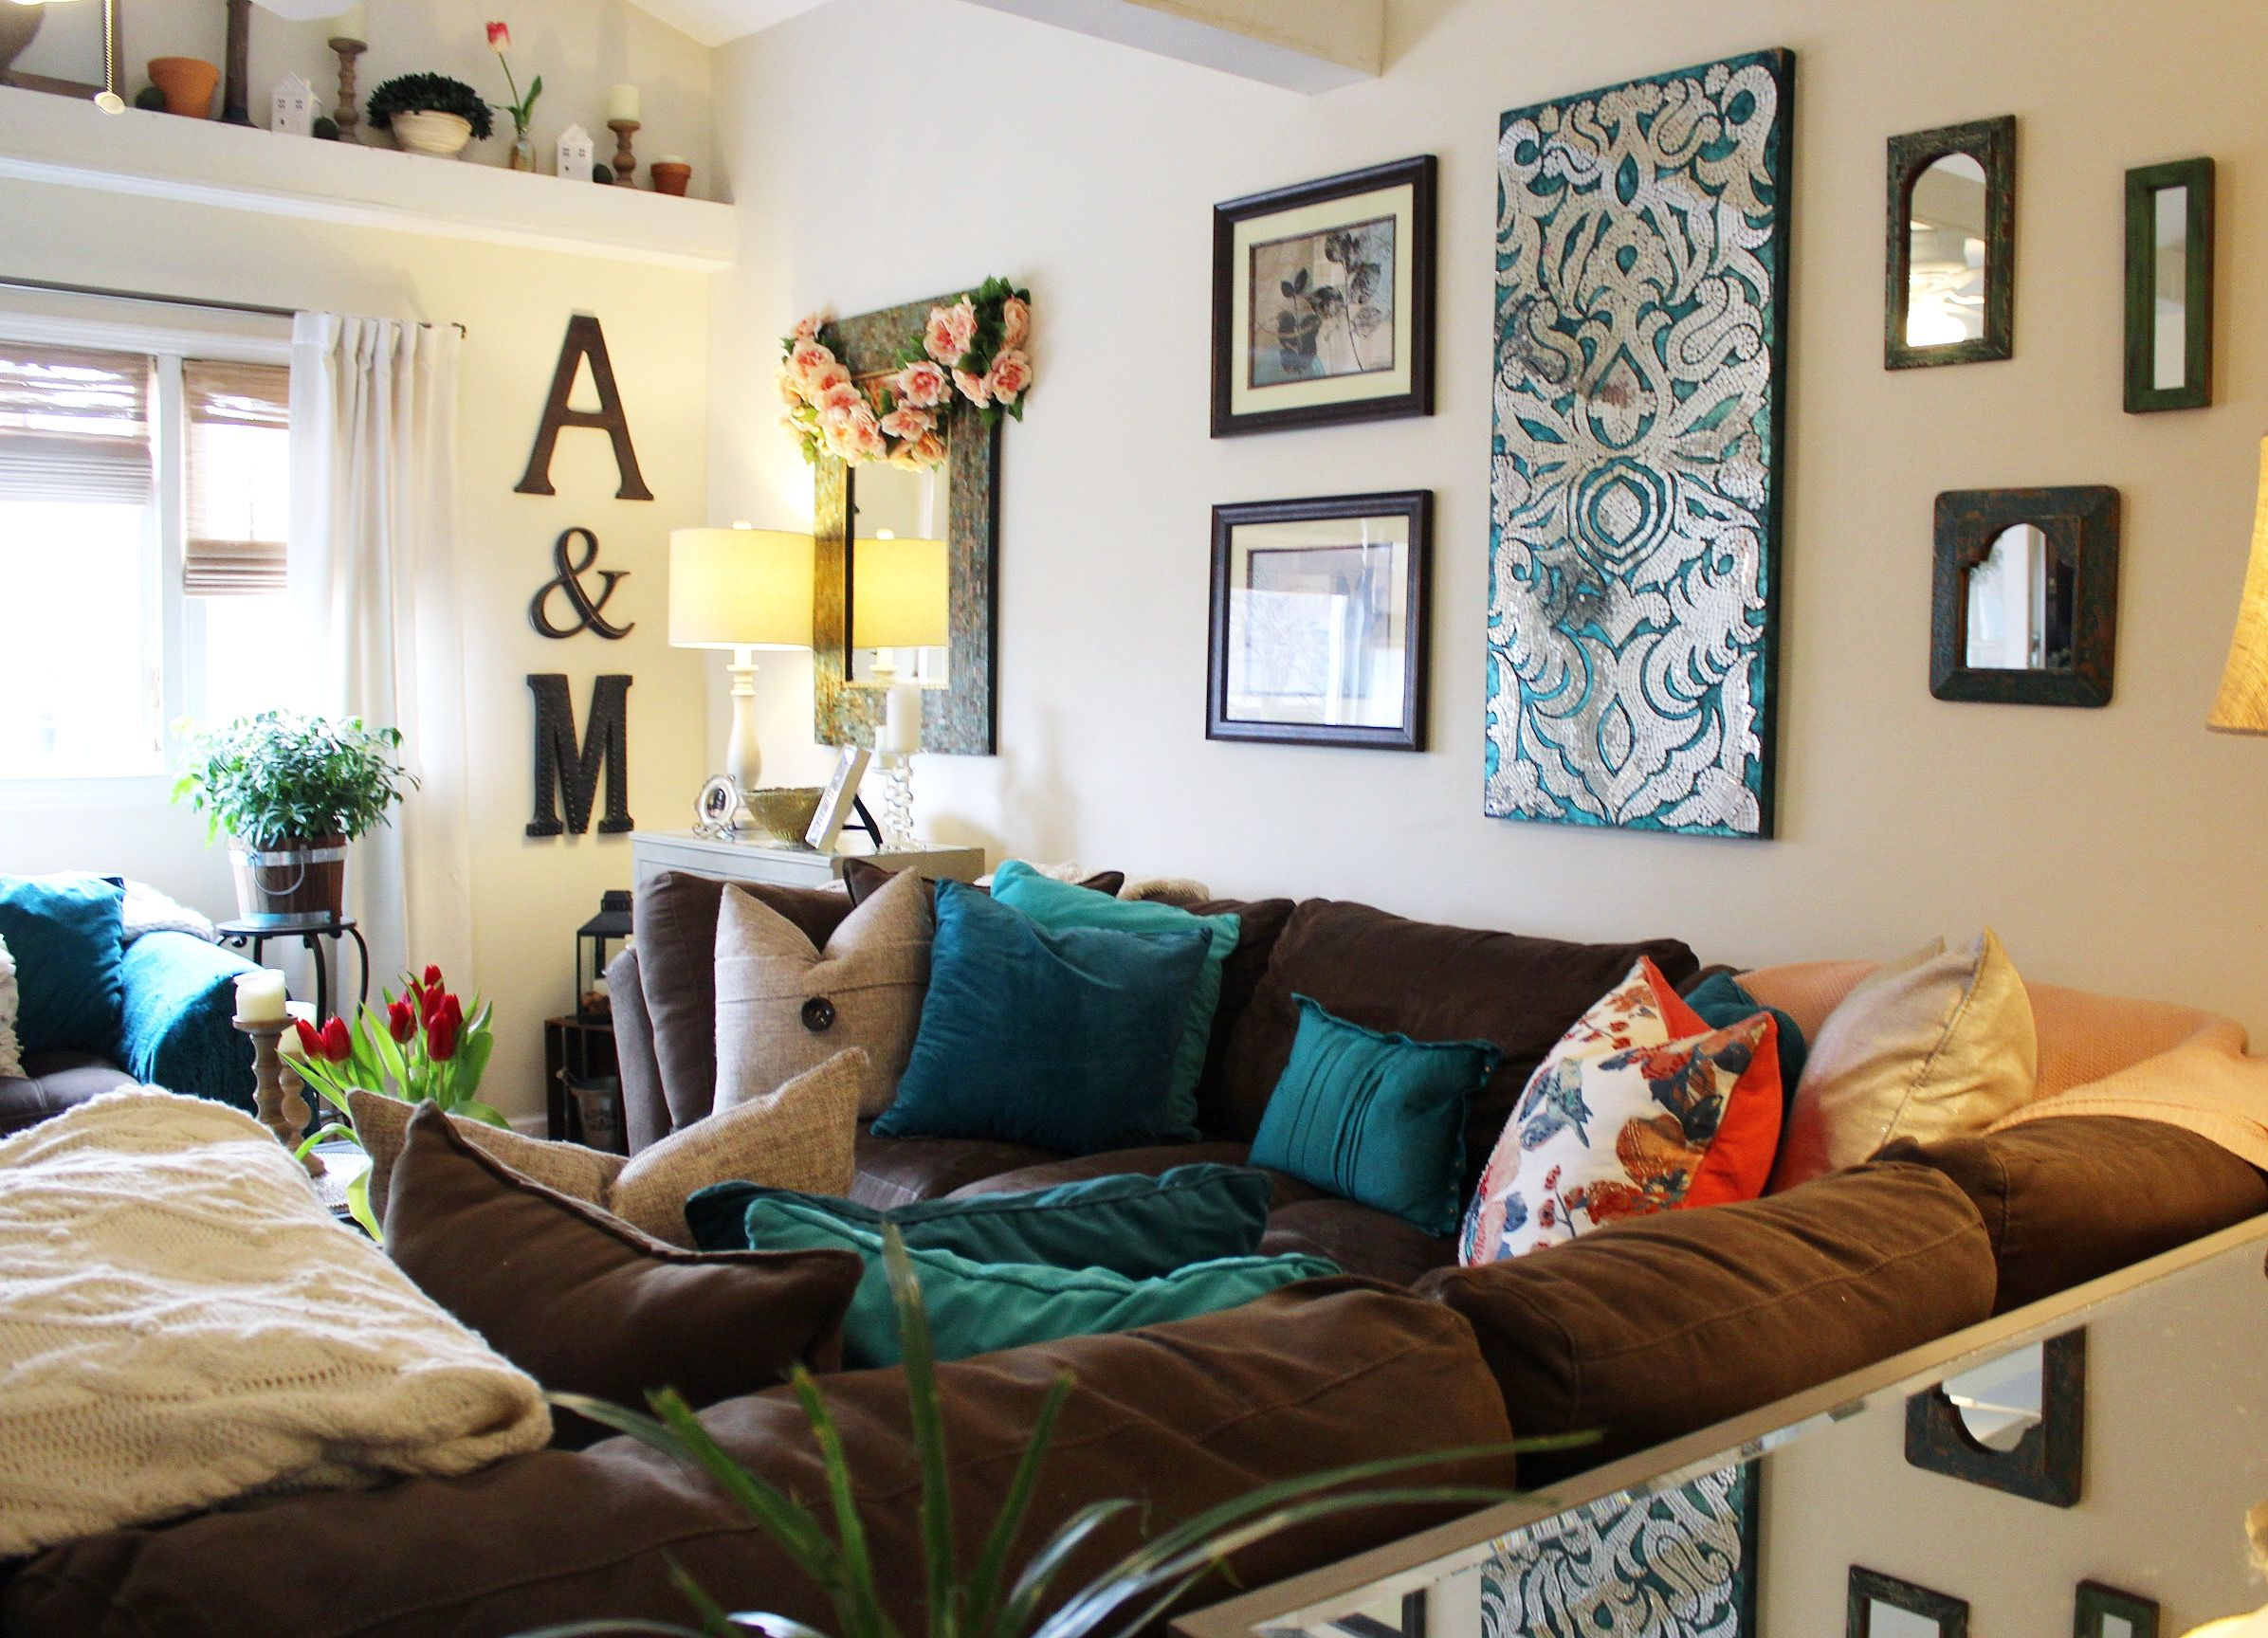 Cozy Brown Couch With Teal Accents Sectional Home Decor Pier1 Living Room Turquoise Home Decor Decor #turquoise #accents #for #living #room